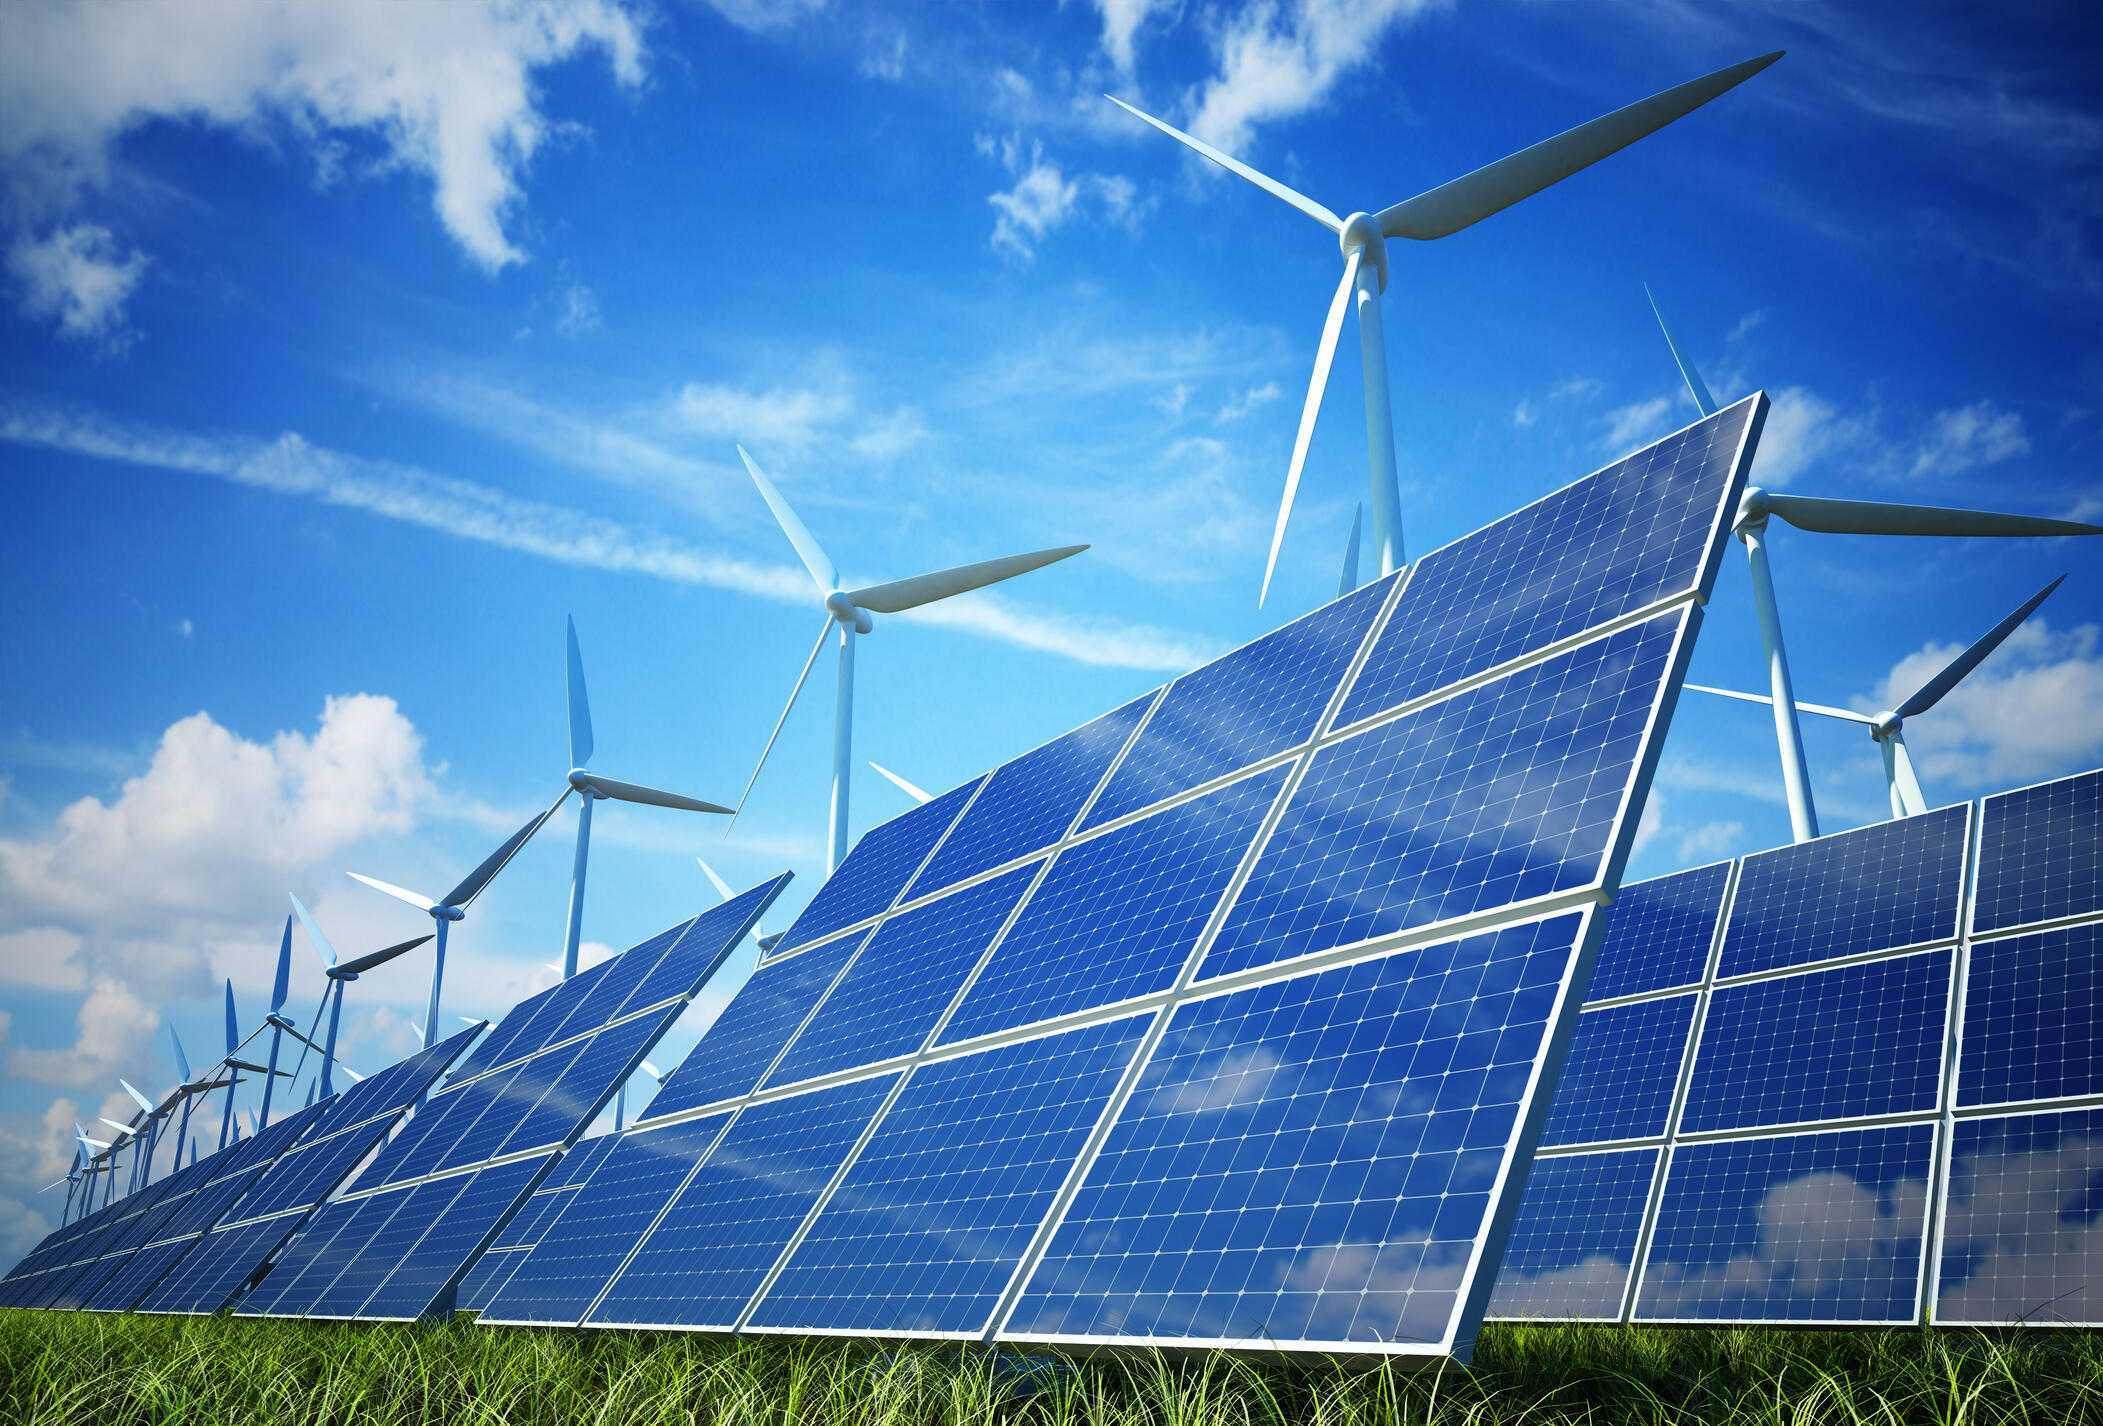 The Economic and Environmental Impacts of Solar Energy Companies